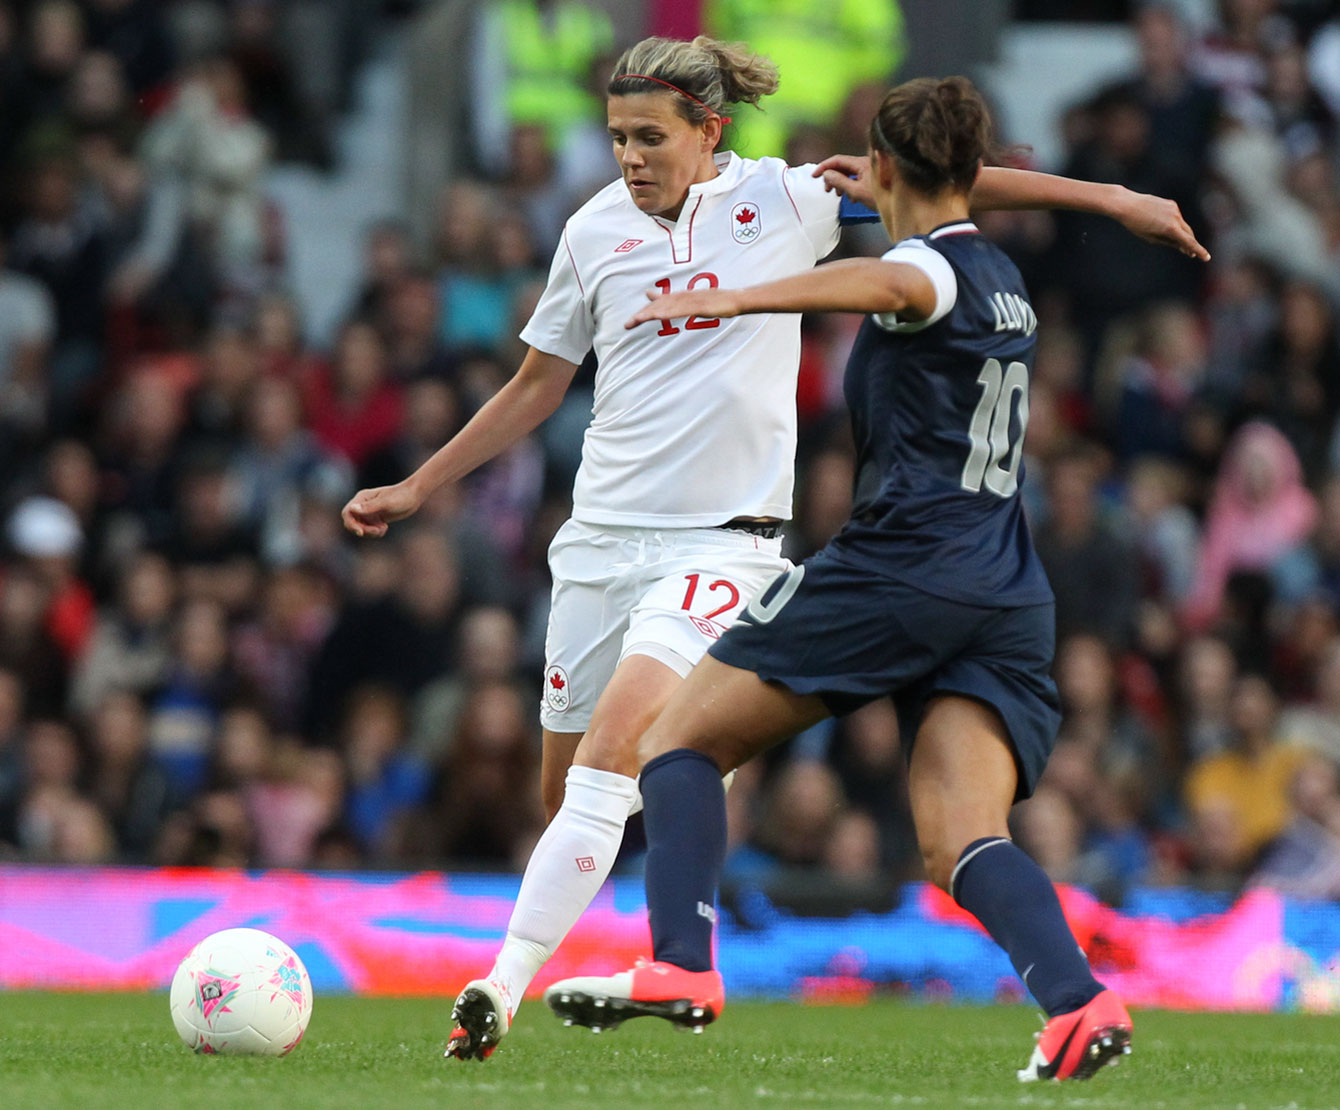 Christine Sinclair (left) at London 2012 against the United States in the semifinals.